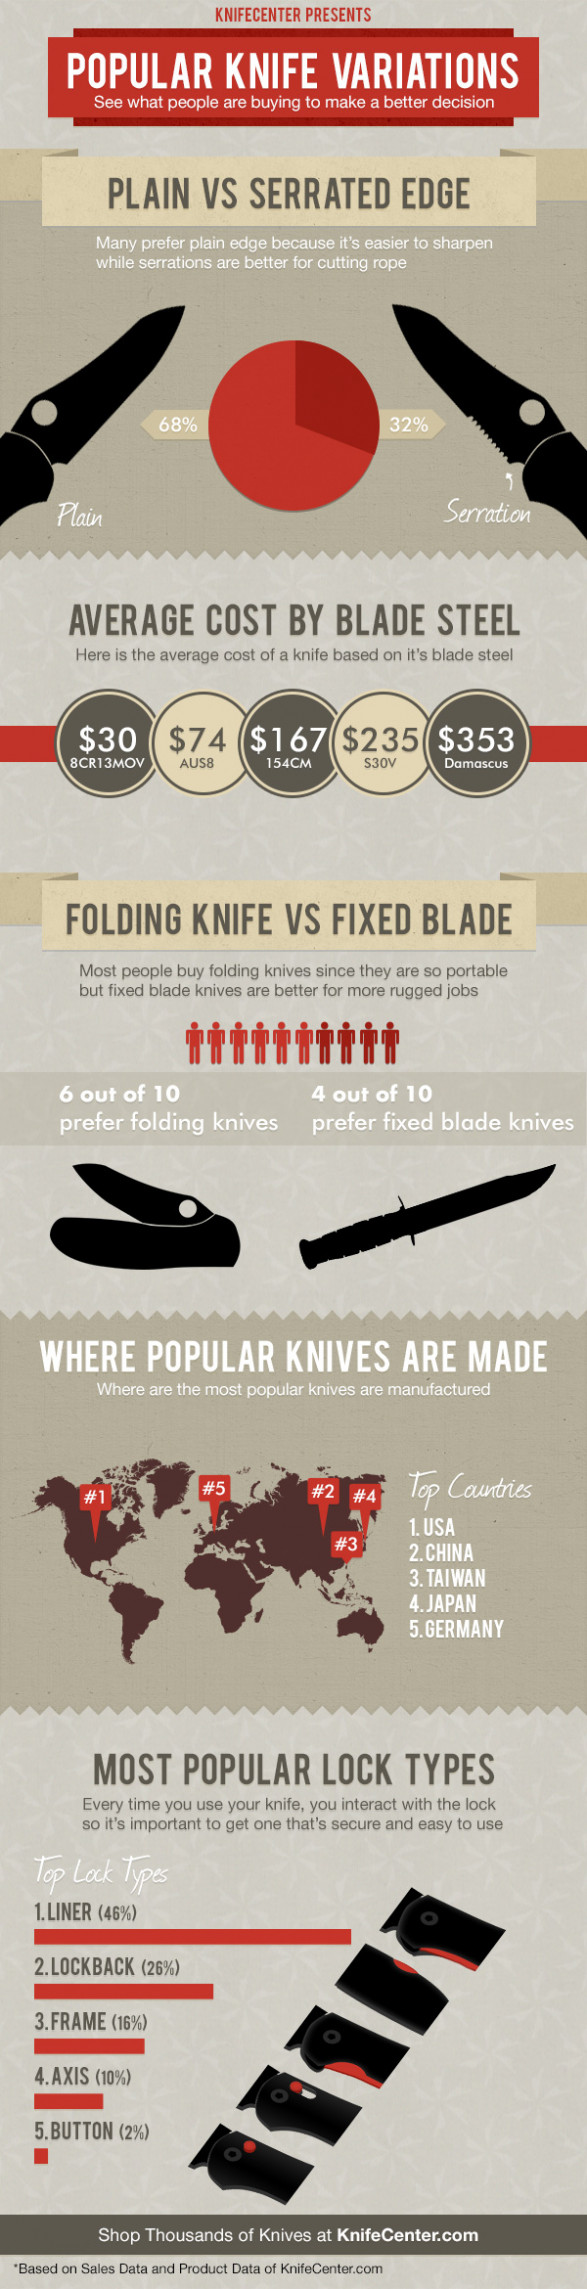 Popular Knife Variations